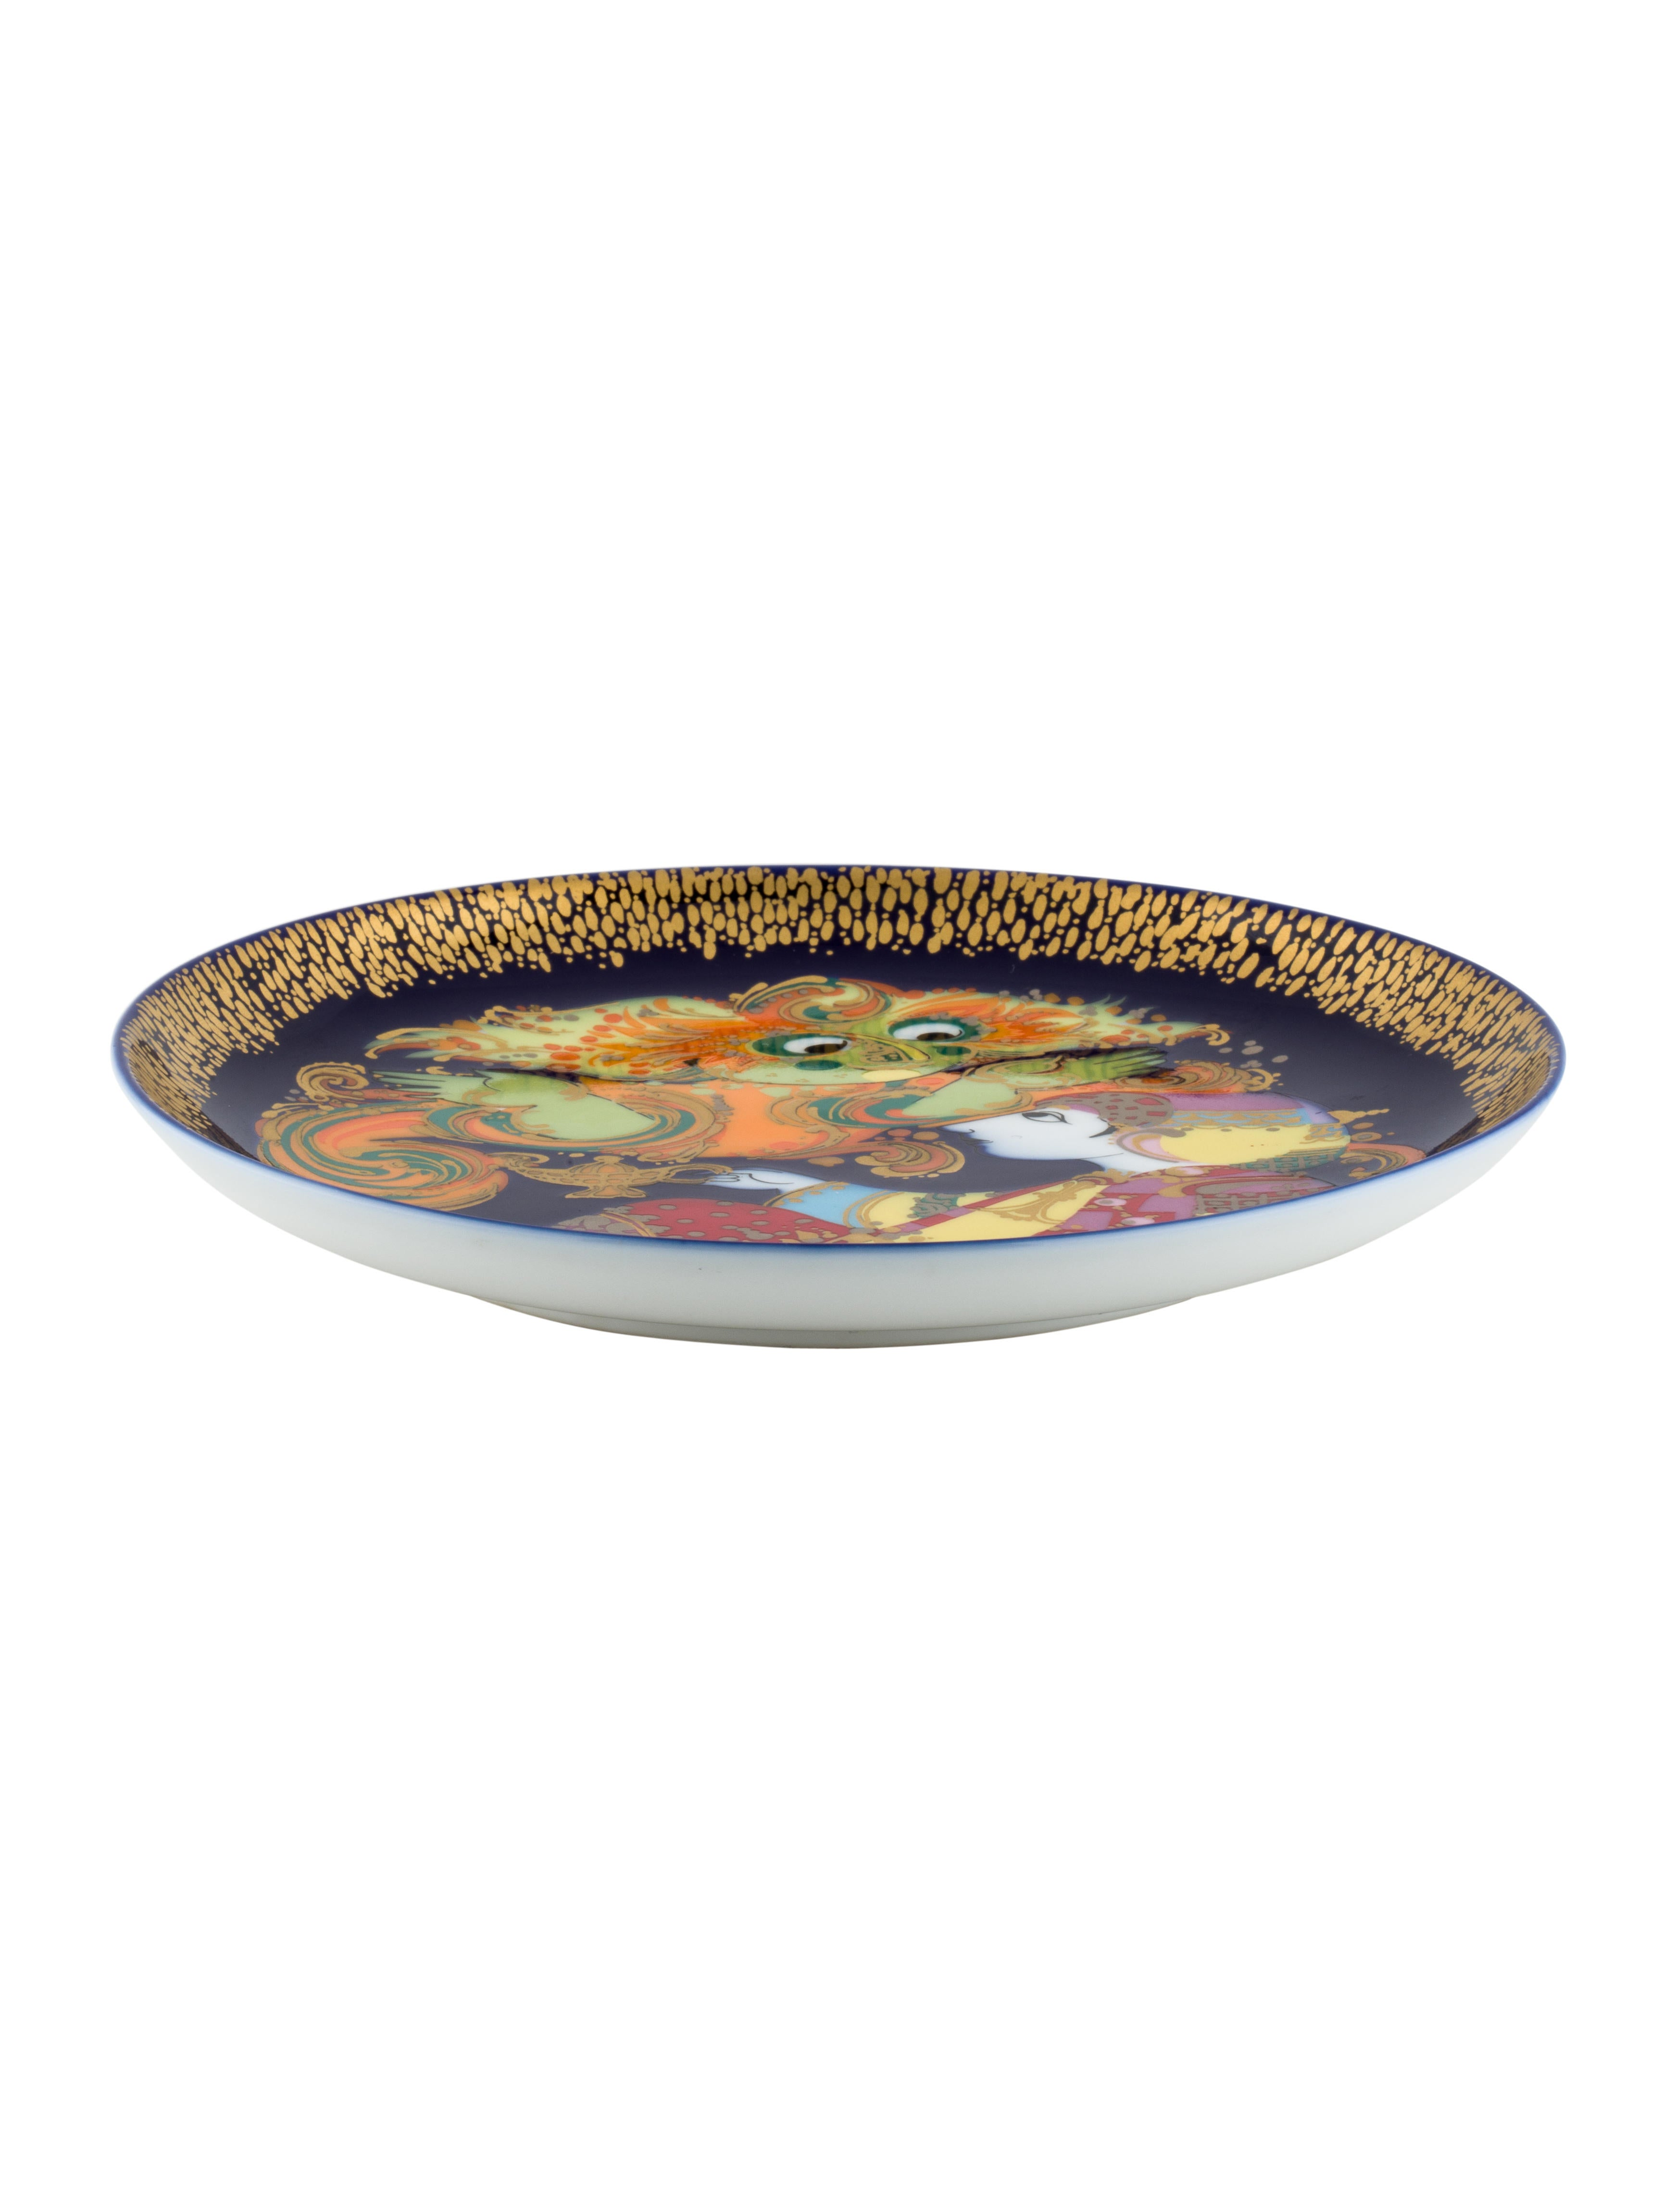 Rosenthal Set Of Decorative Plates Tabletop And Kitchen